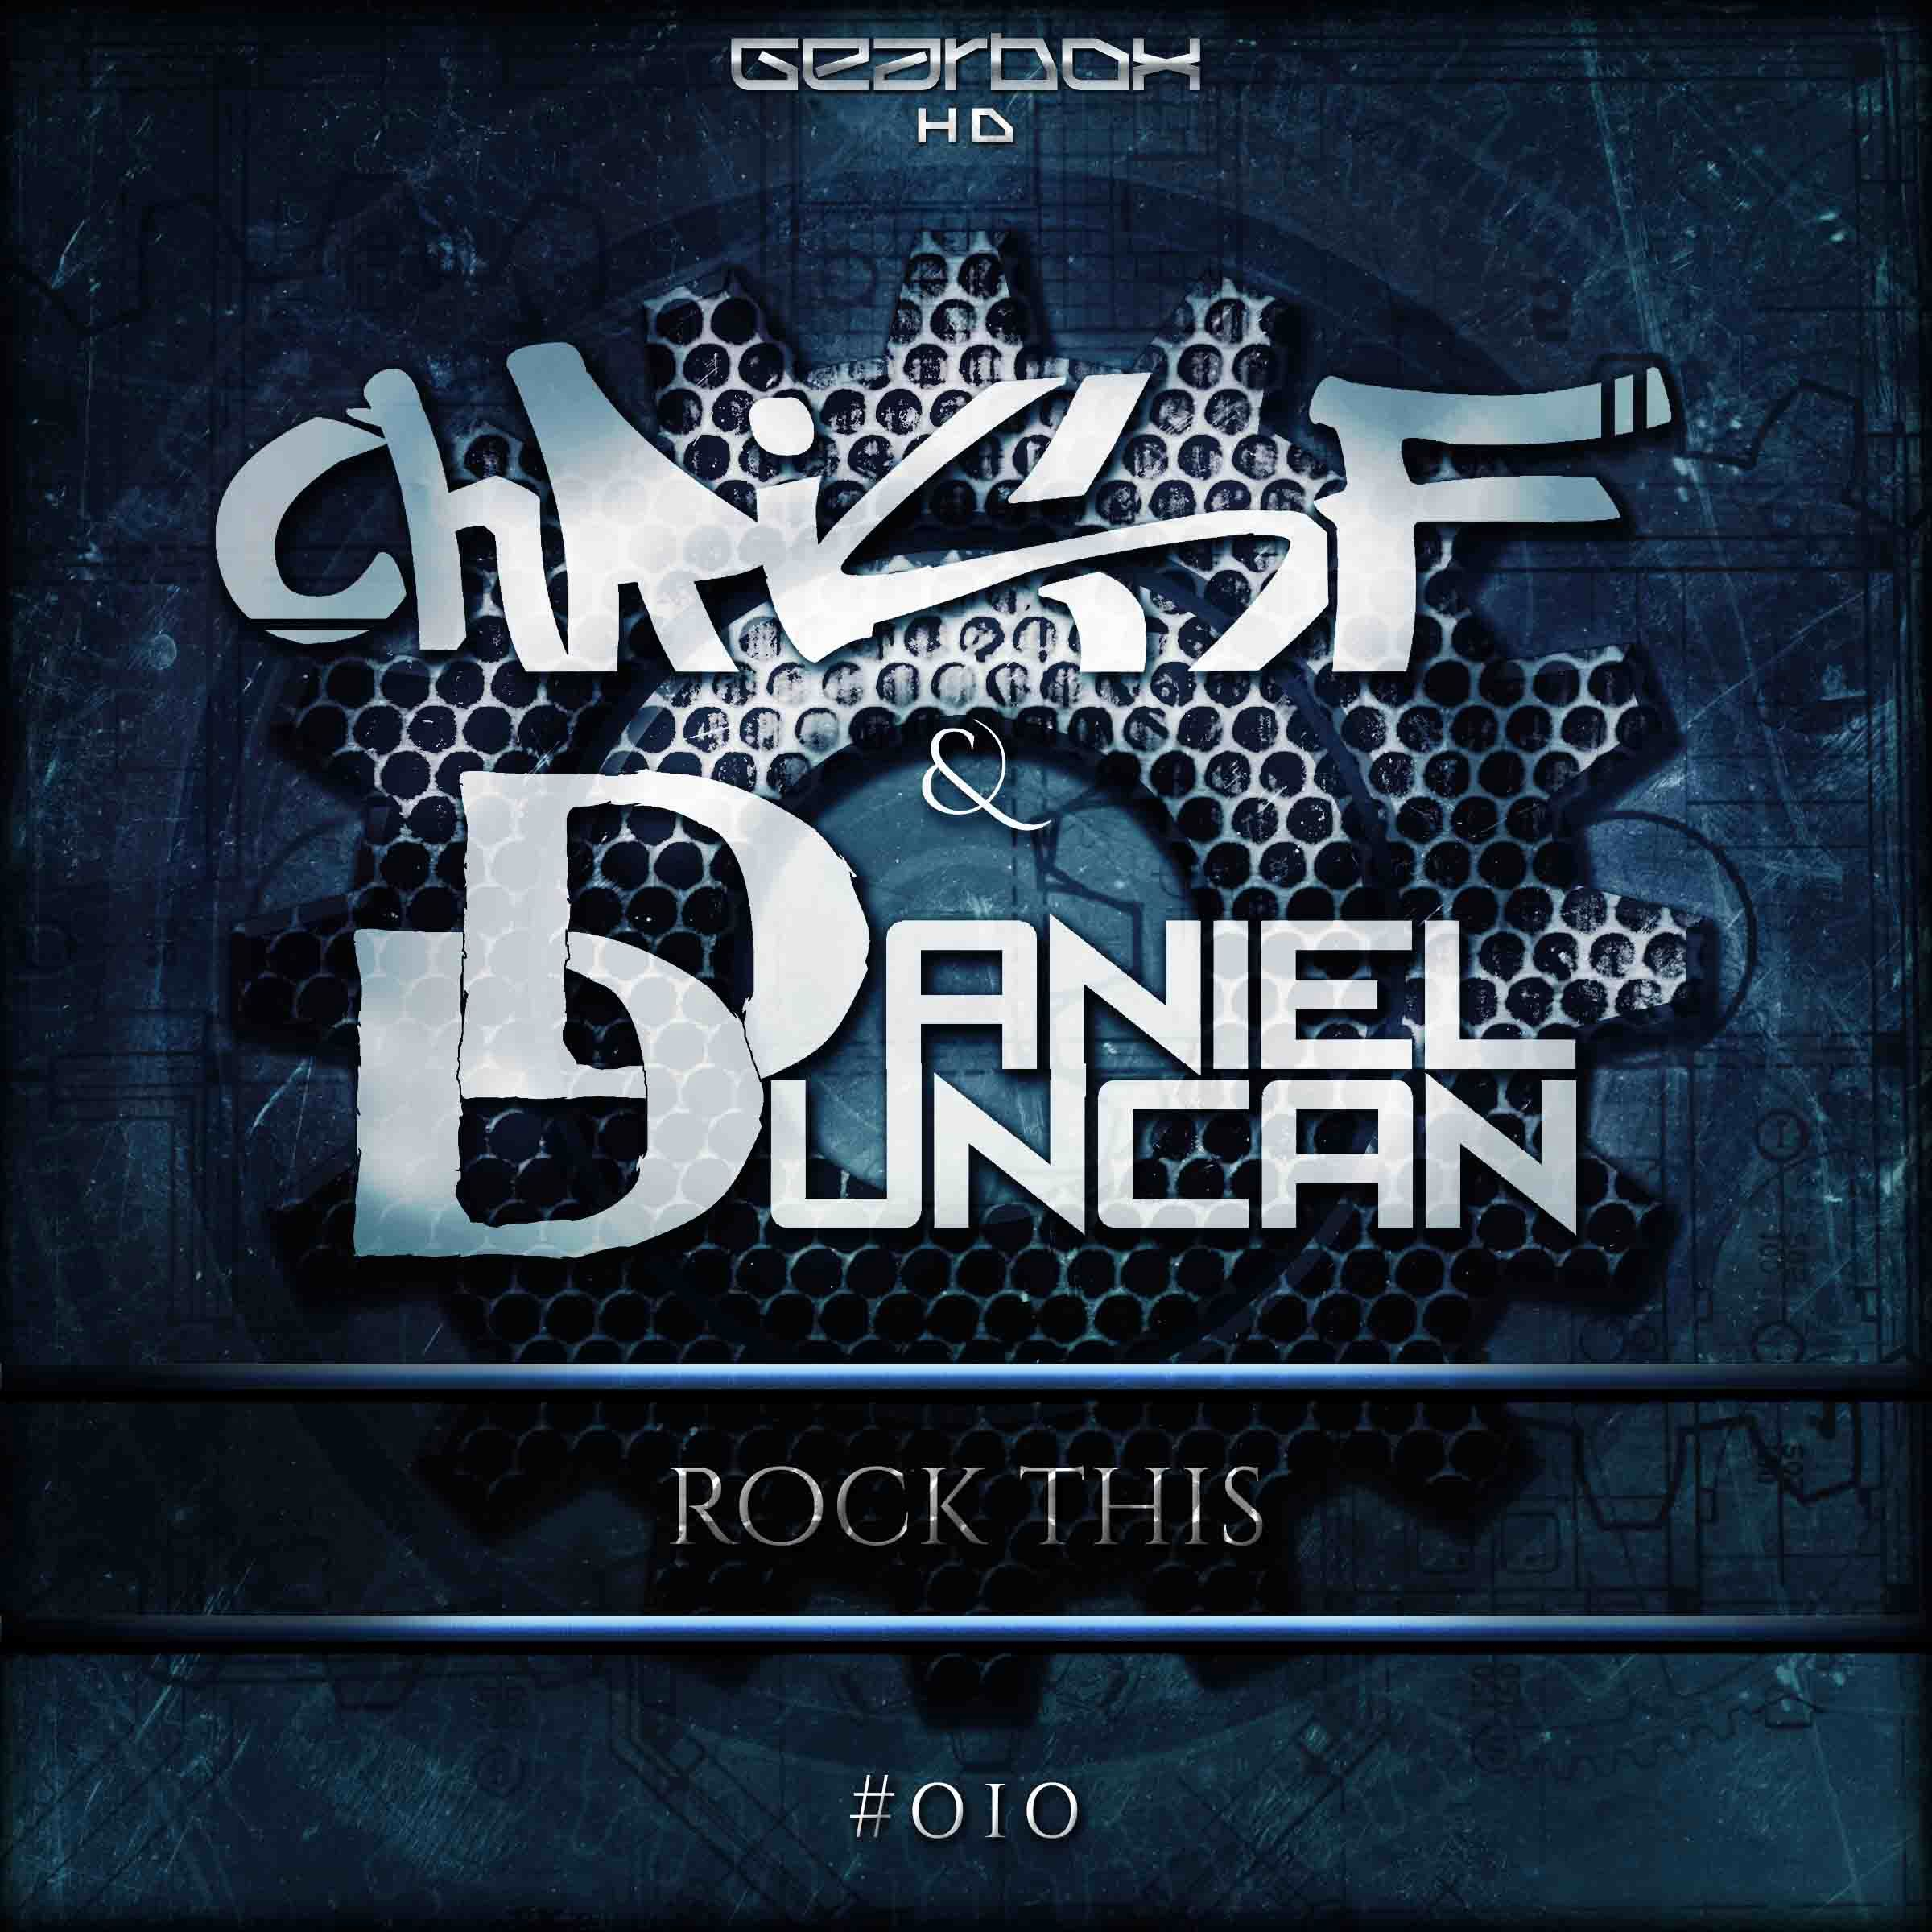 Chris F & Daniel Duncan - Rock This [GEARBOX HARD DANCE] GHD010